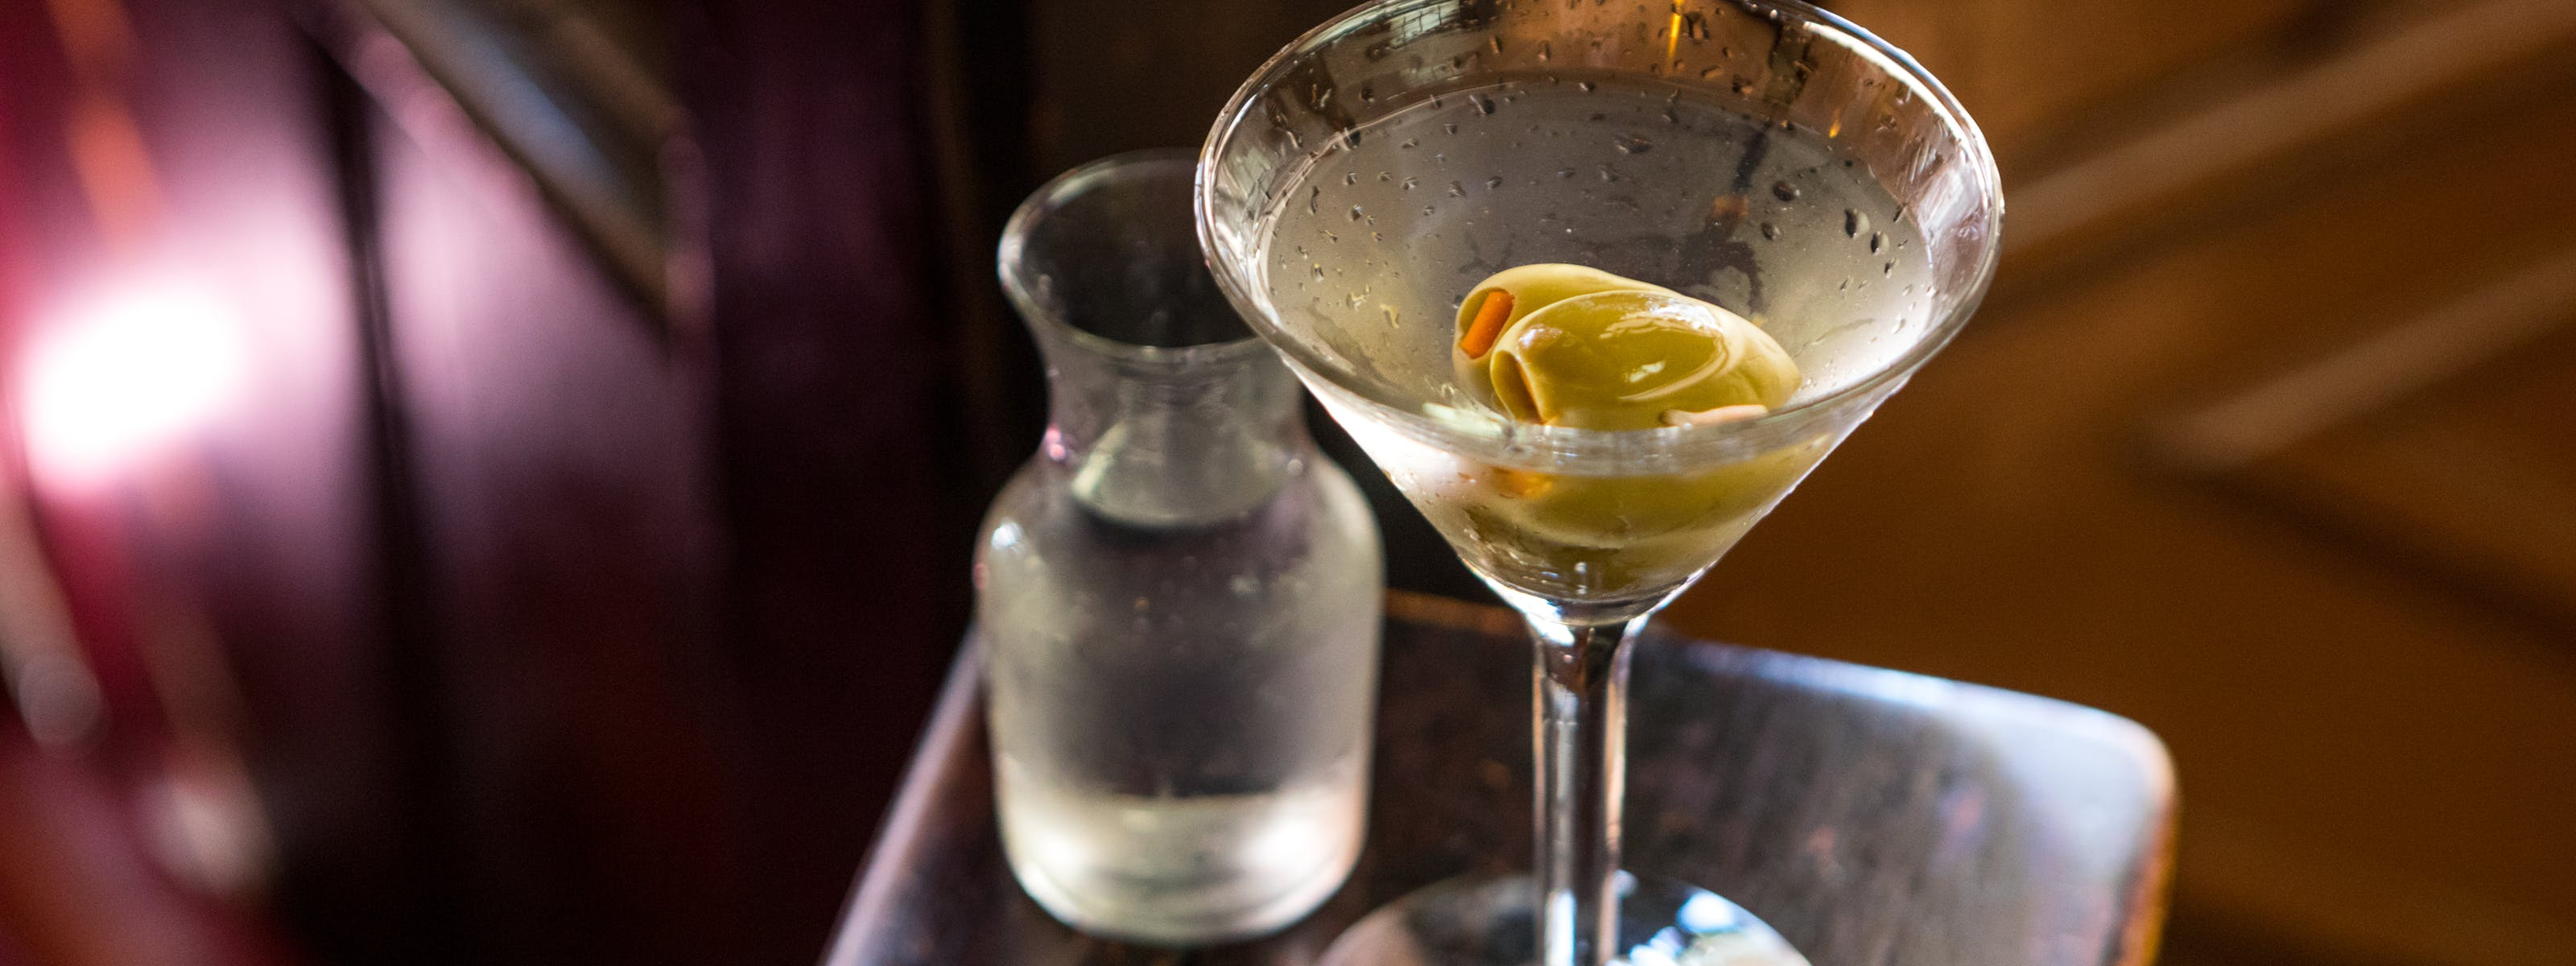 5 To-Go Martinis To Order Tonight In LA - Los Angeles - The Infatuation